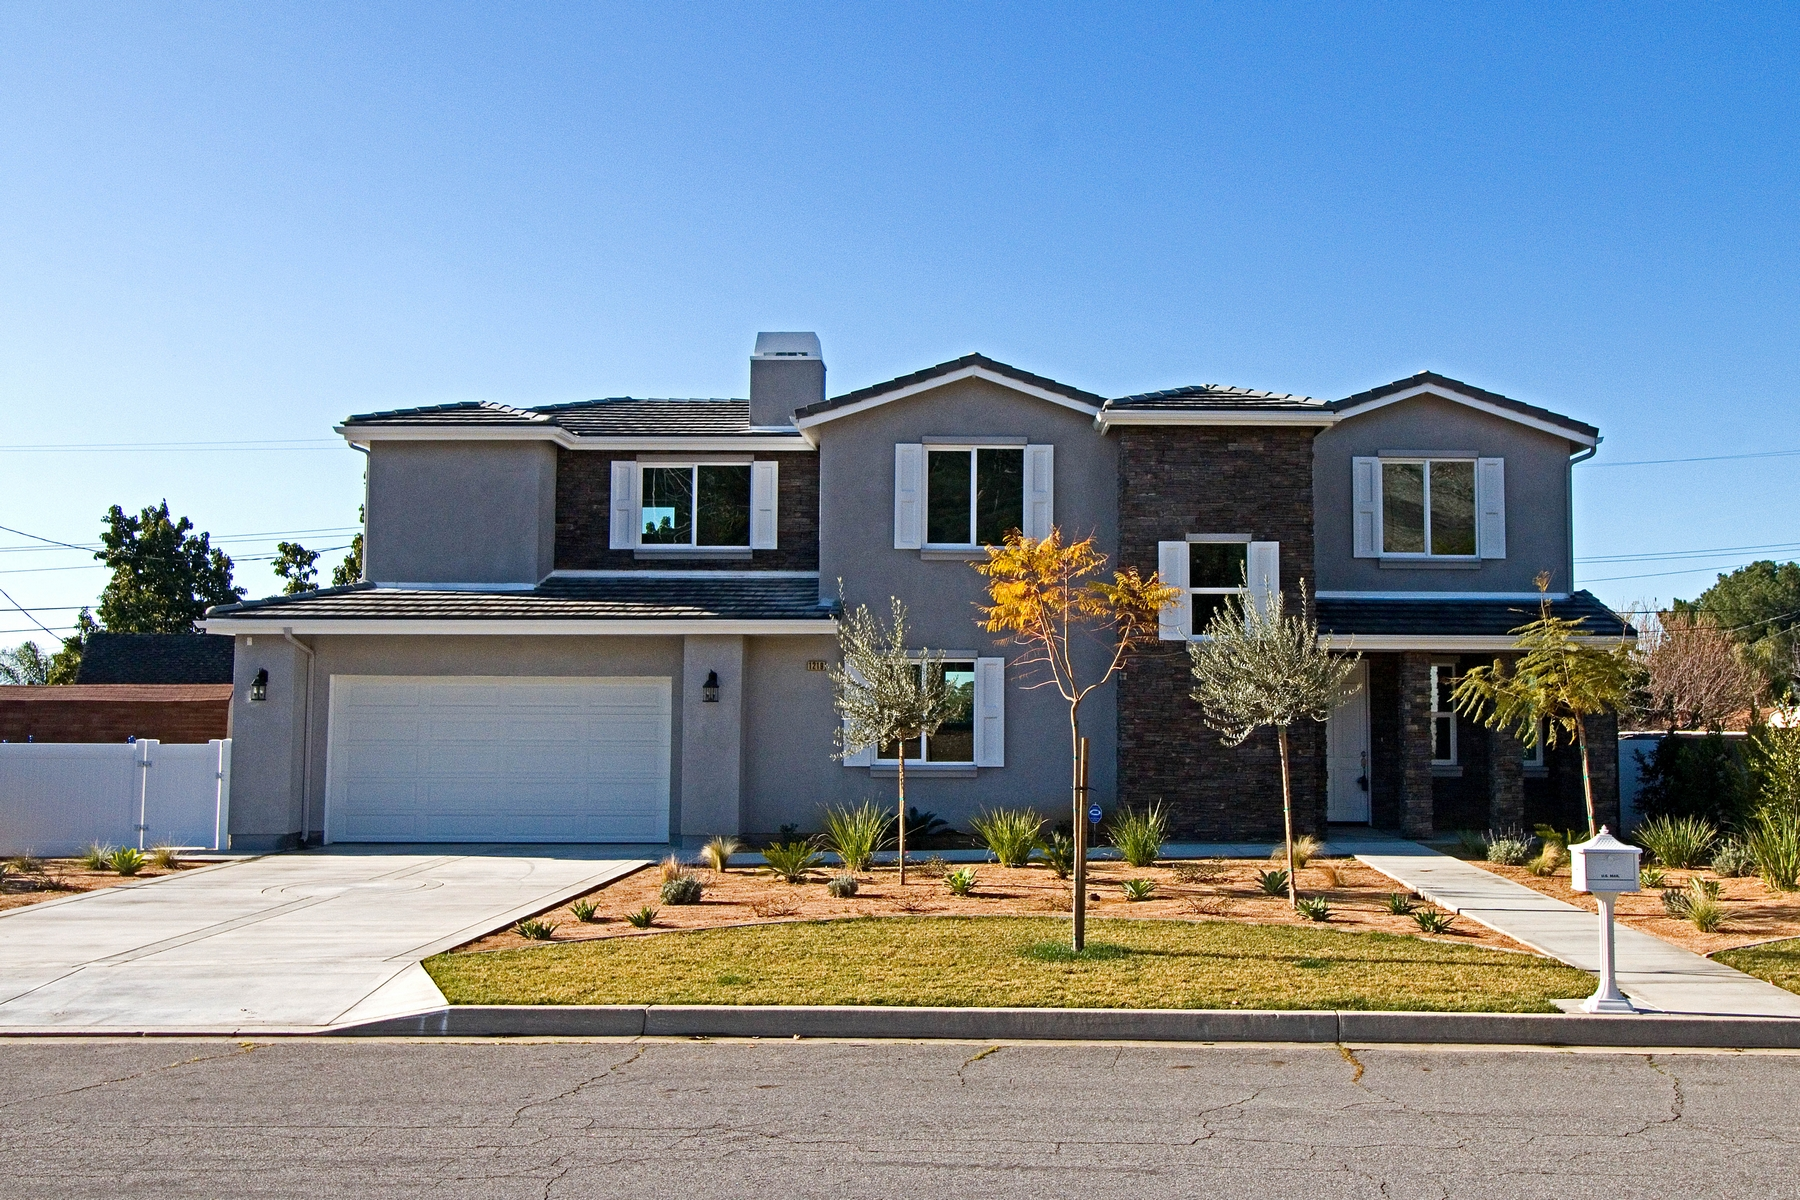 Single Family Home for Sale at 1219 Colony Drive Upland, California 91784 United States